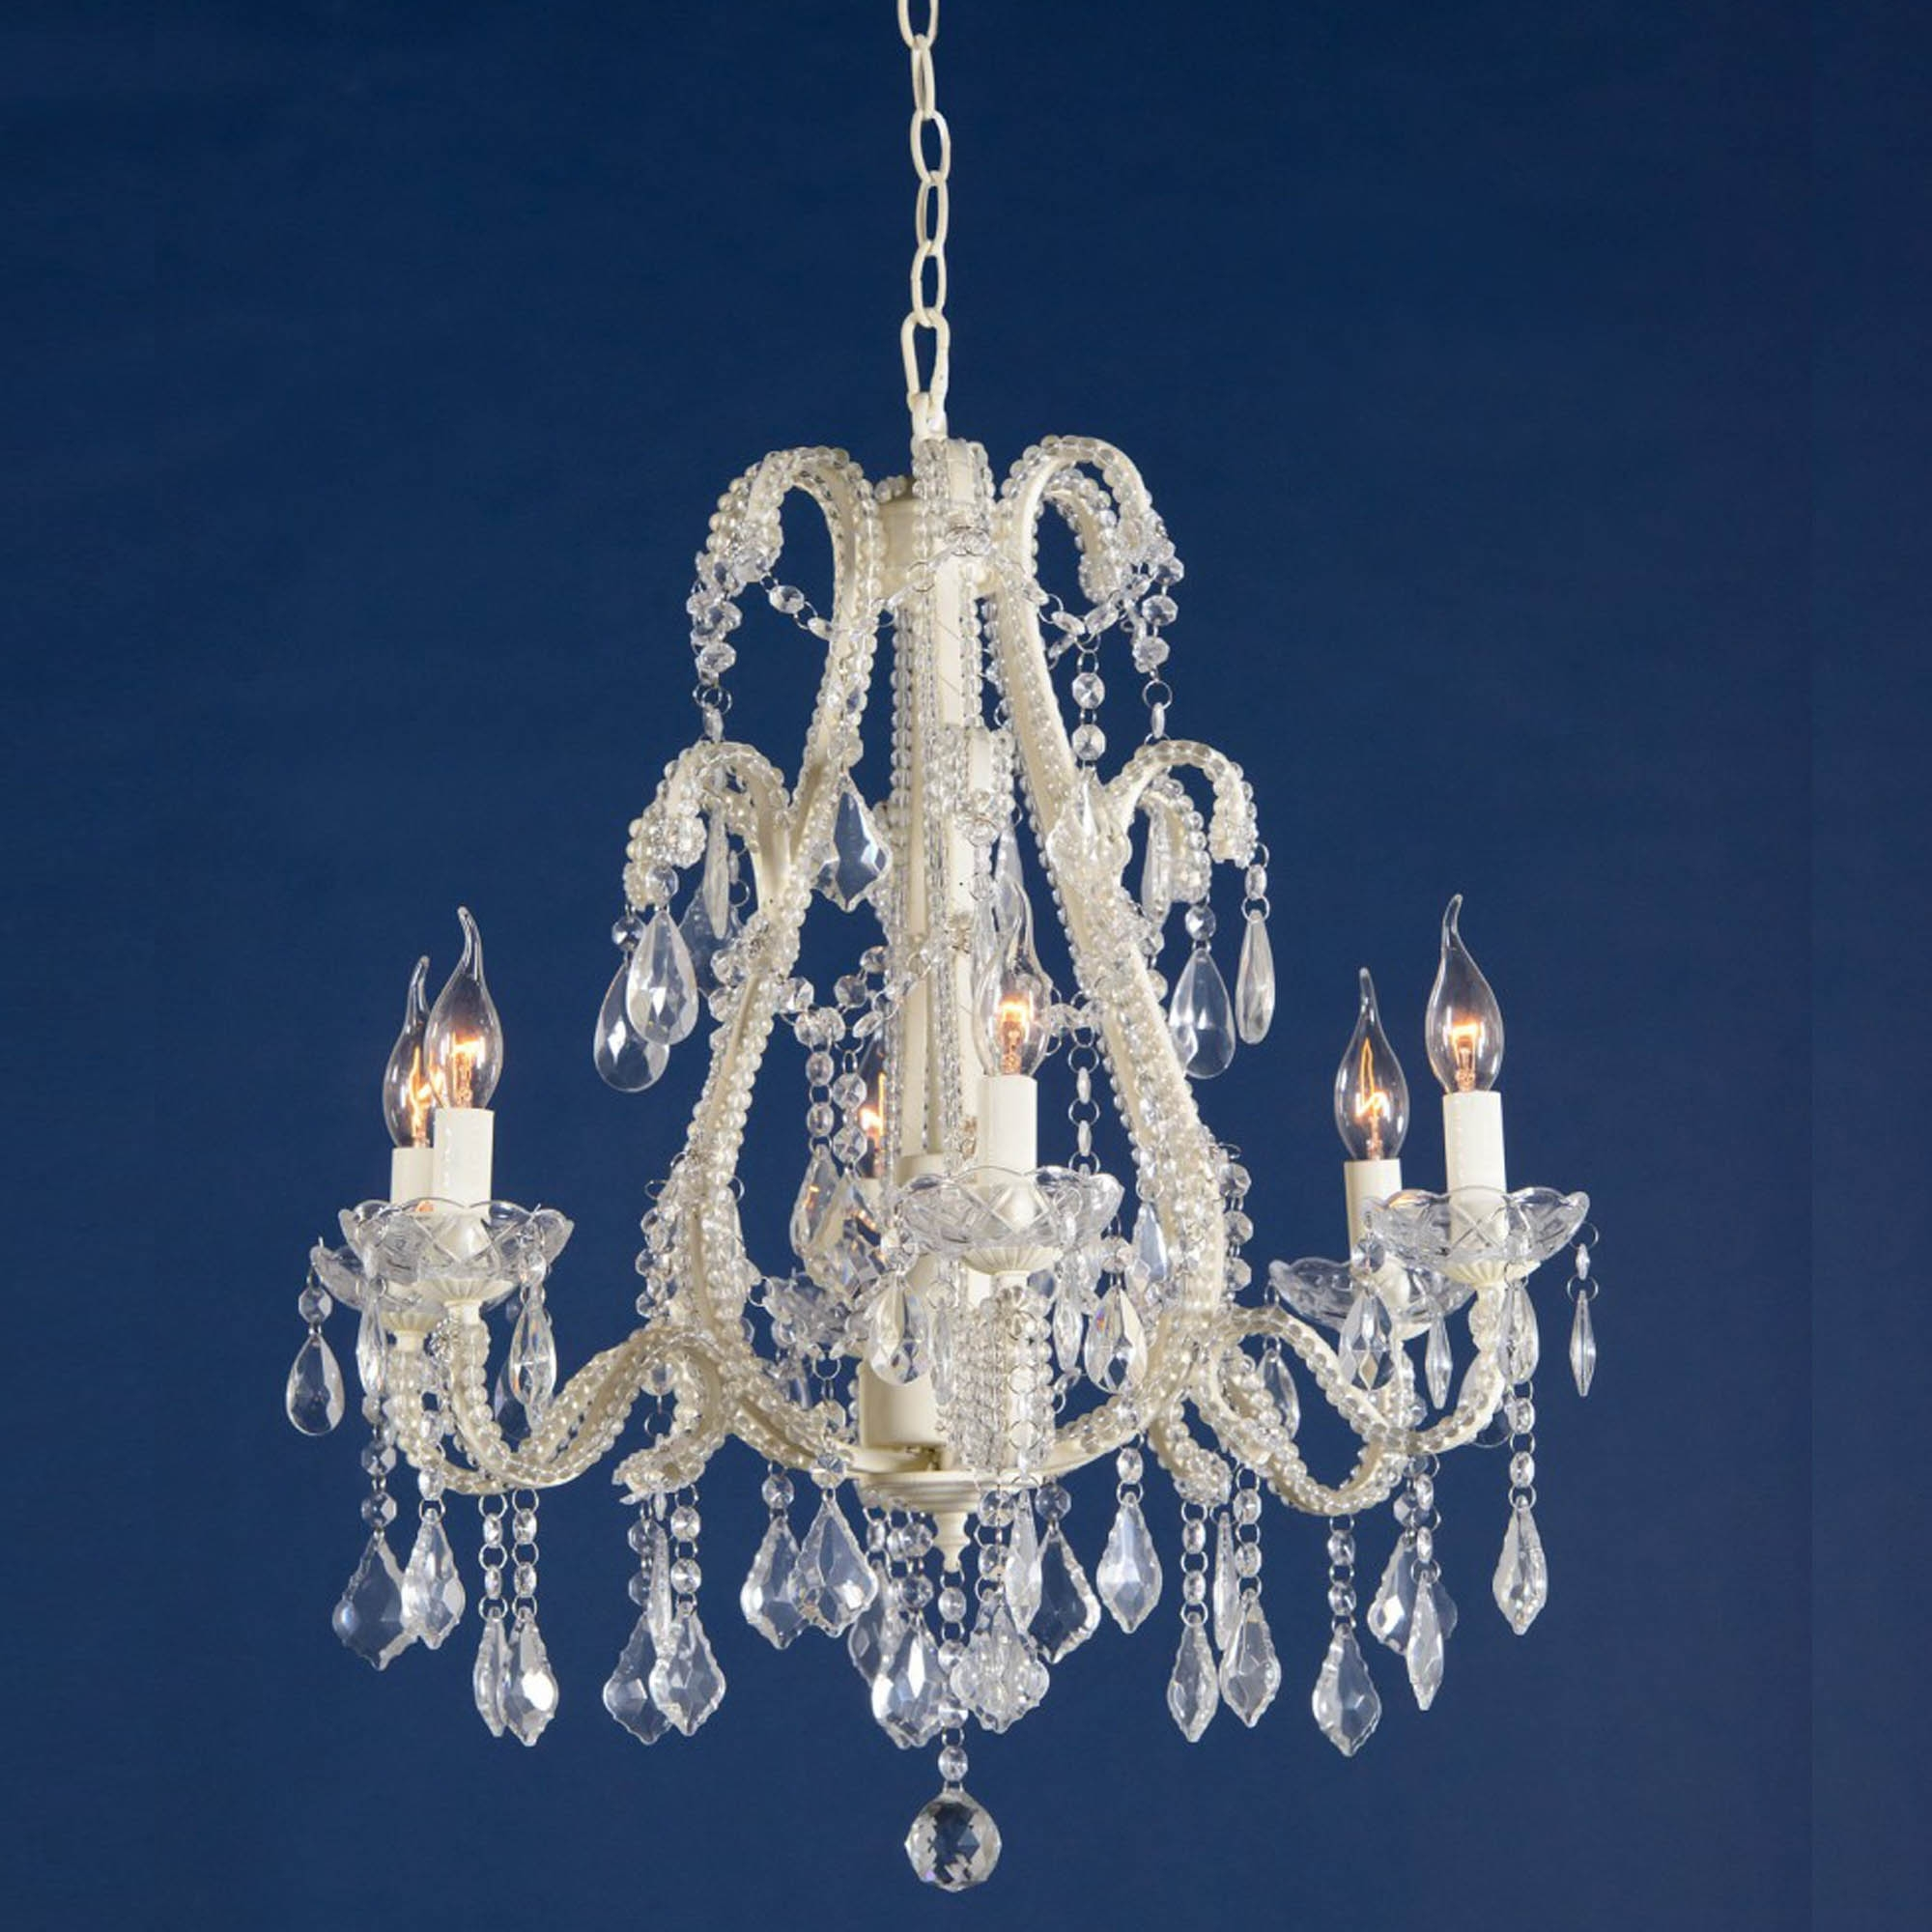 Antique style chandeliers chandelier design ideas marie therese cream antique french style chandelier aloadofball Image collections